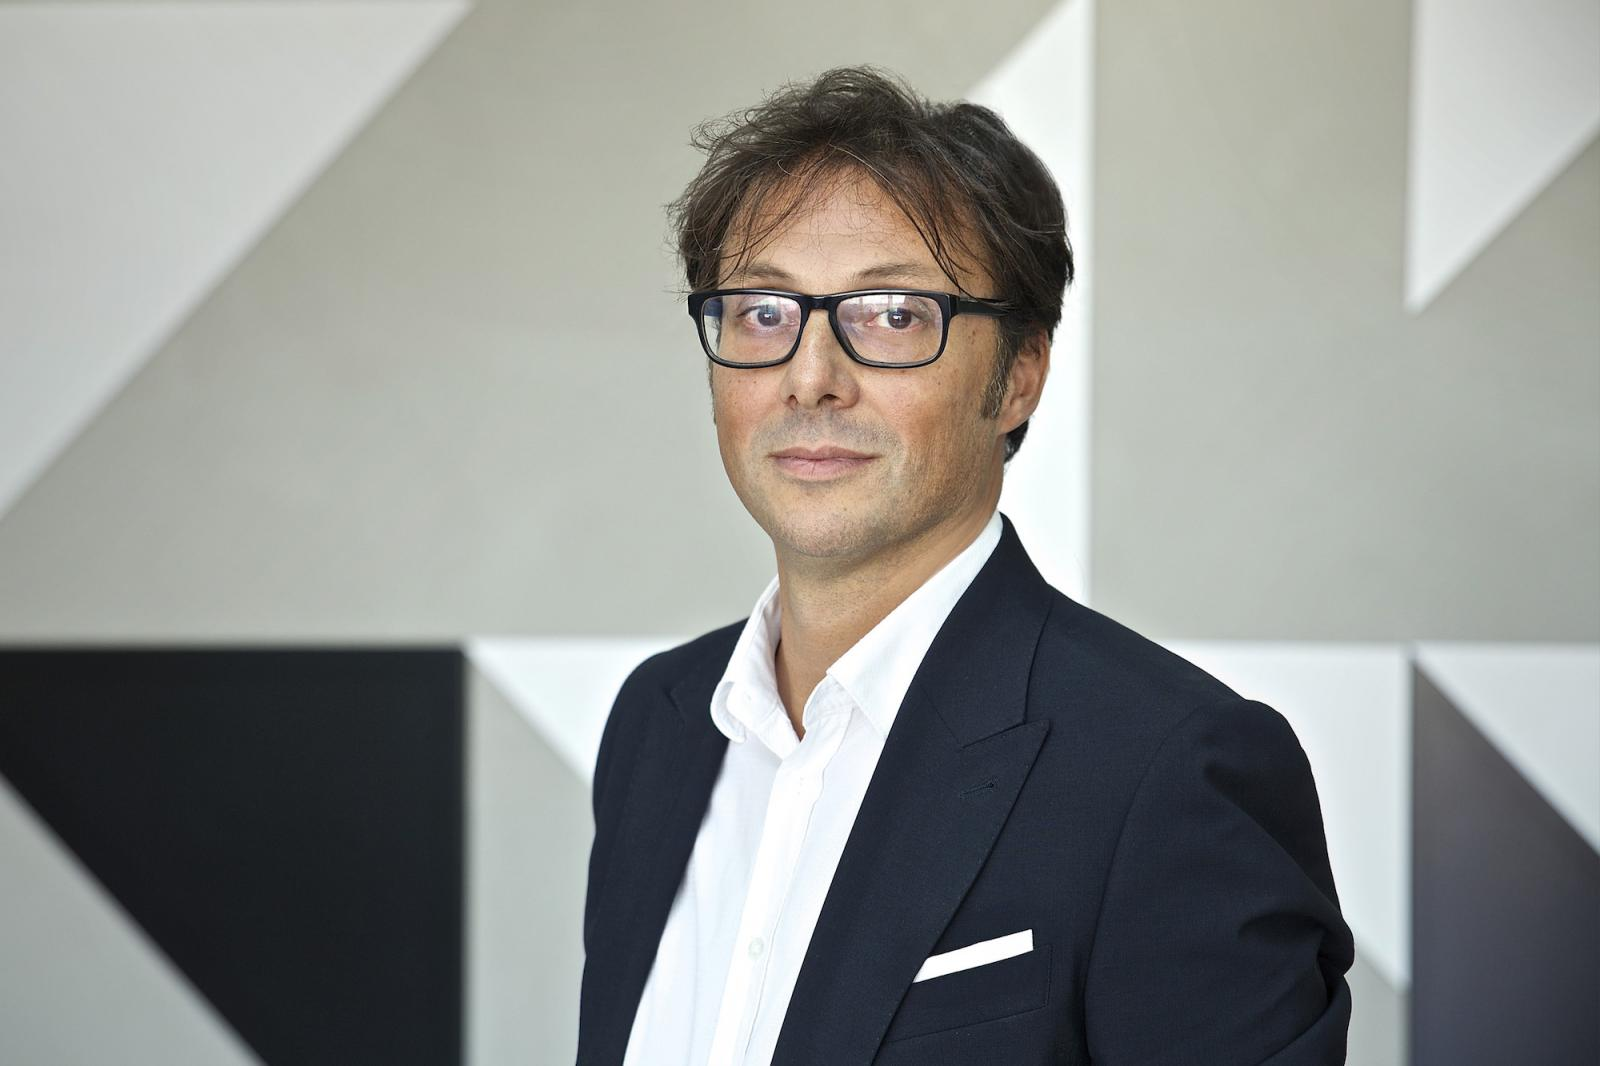 DAVIDE COLLI: der neue Chief Operating Officer von Ceramiche Piemme